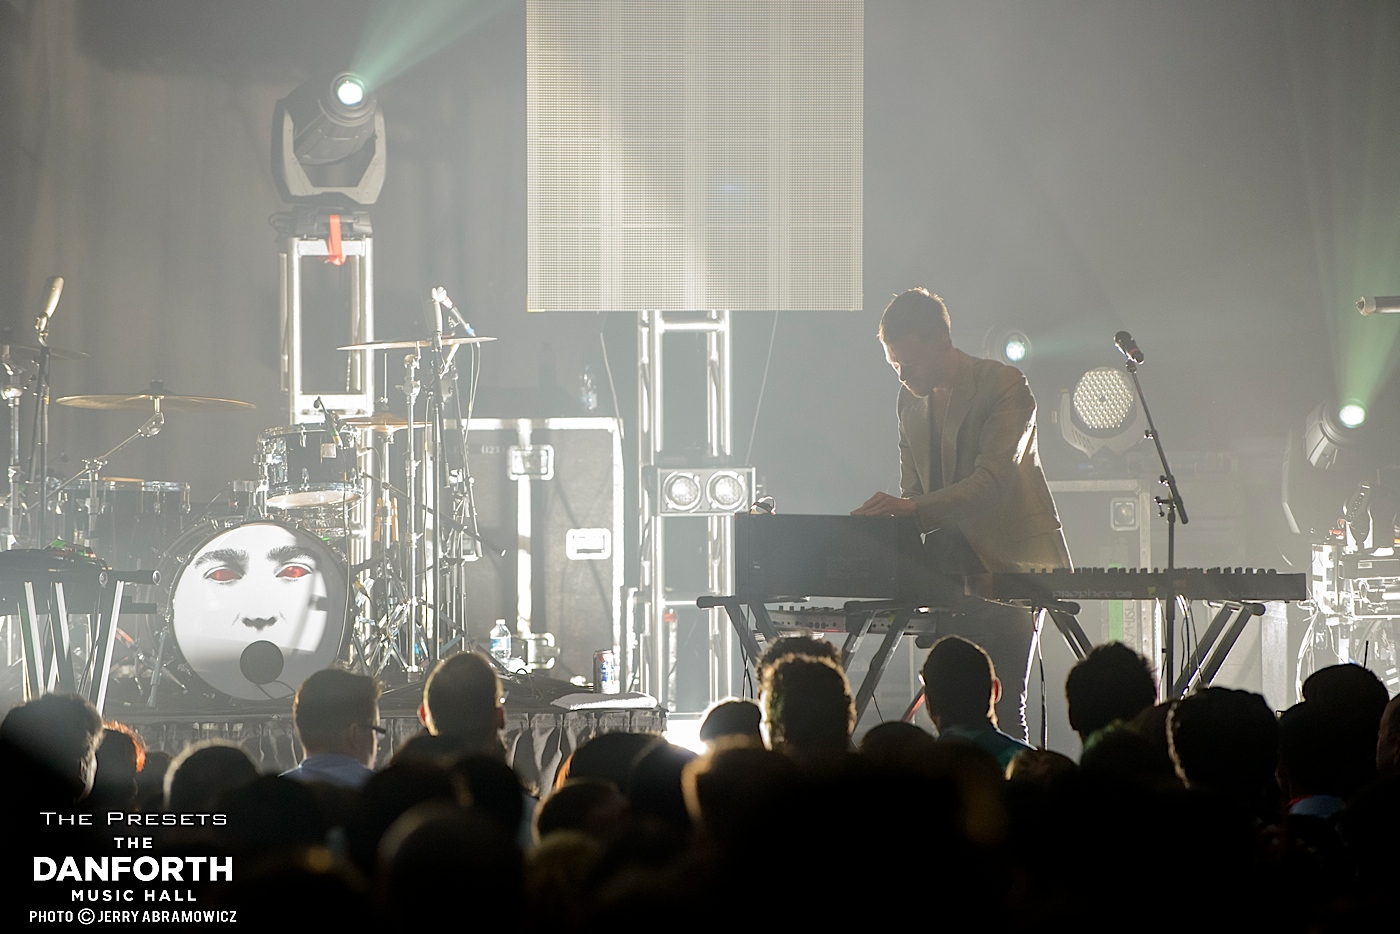 20130510 The Presets perform at The Danforth Music Hall Toronto 0787